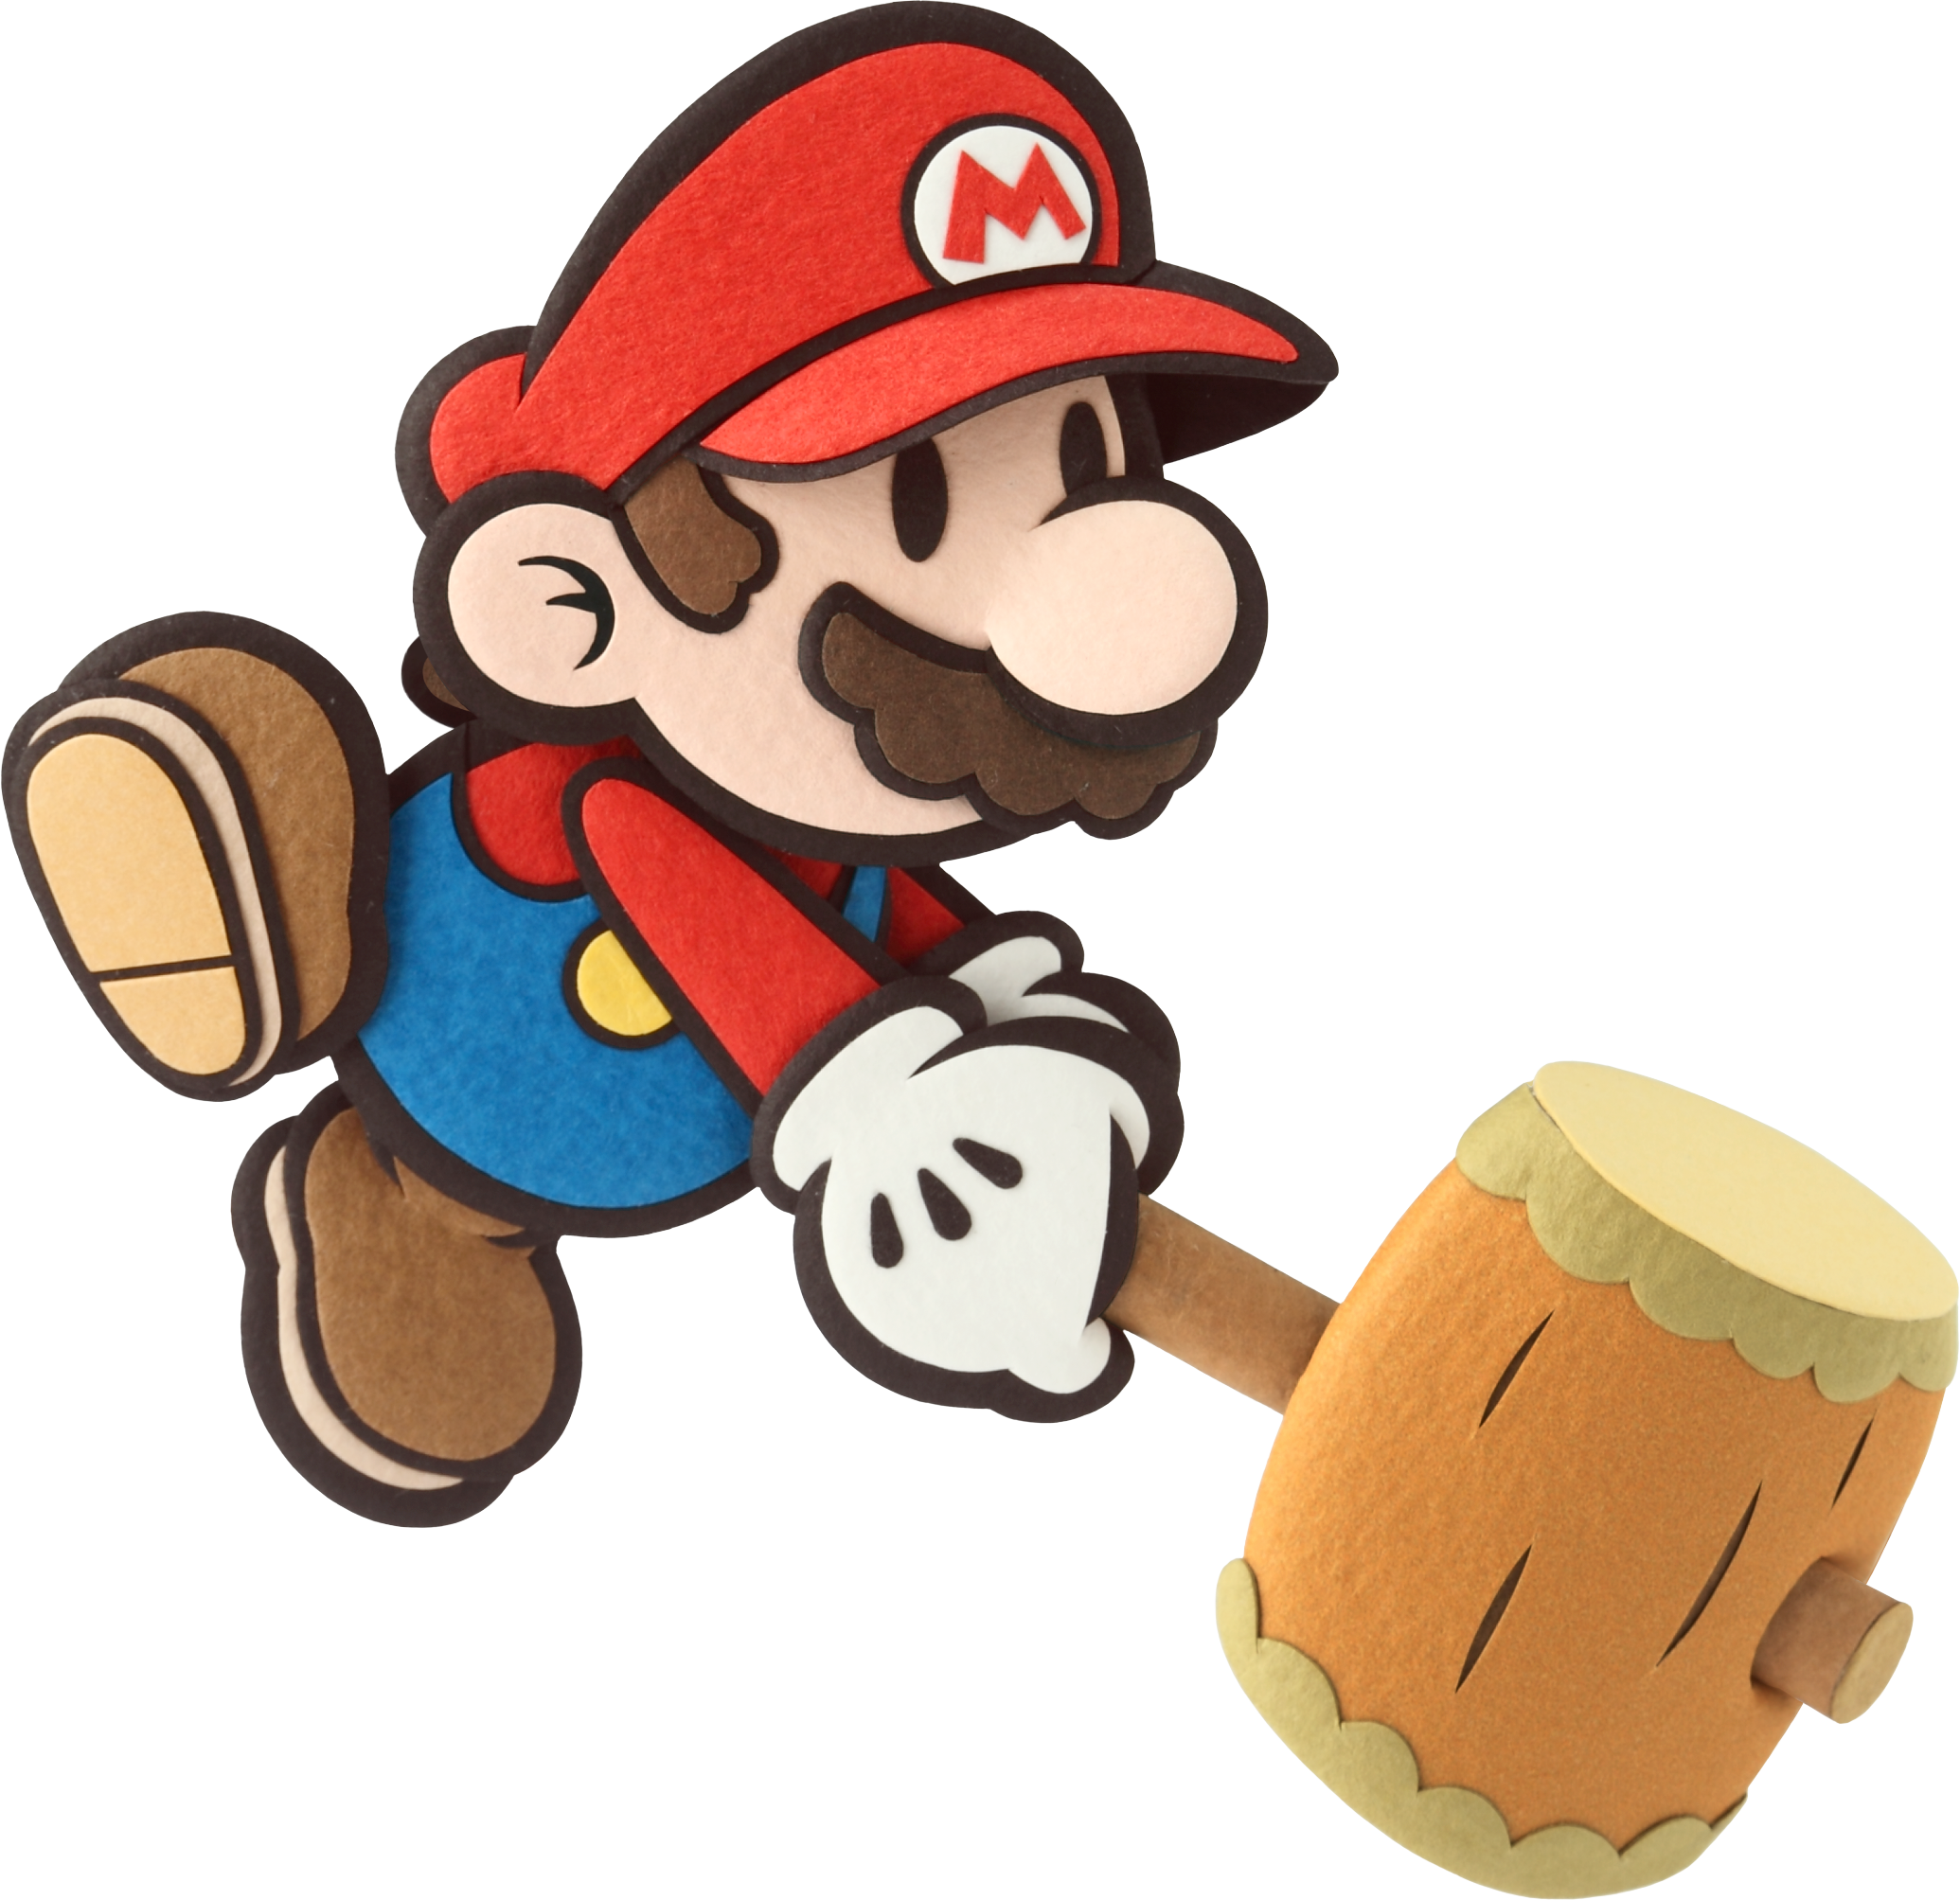 new for paper mario sticker mario legacy